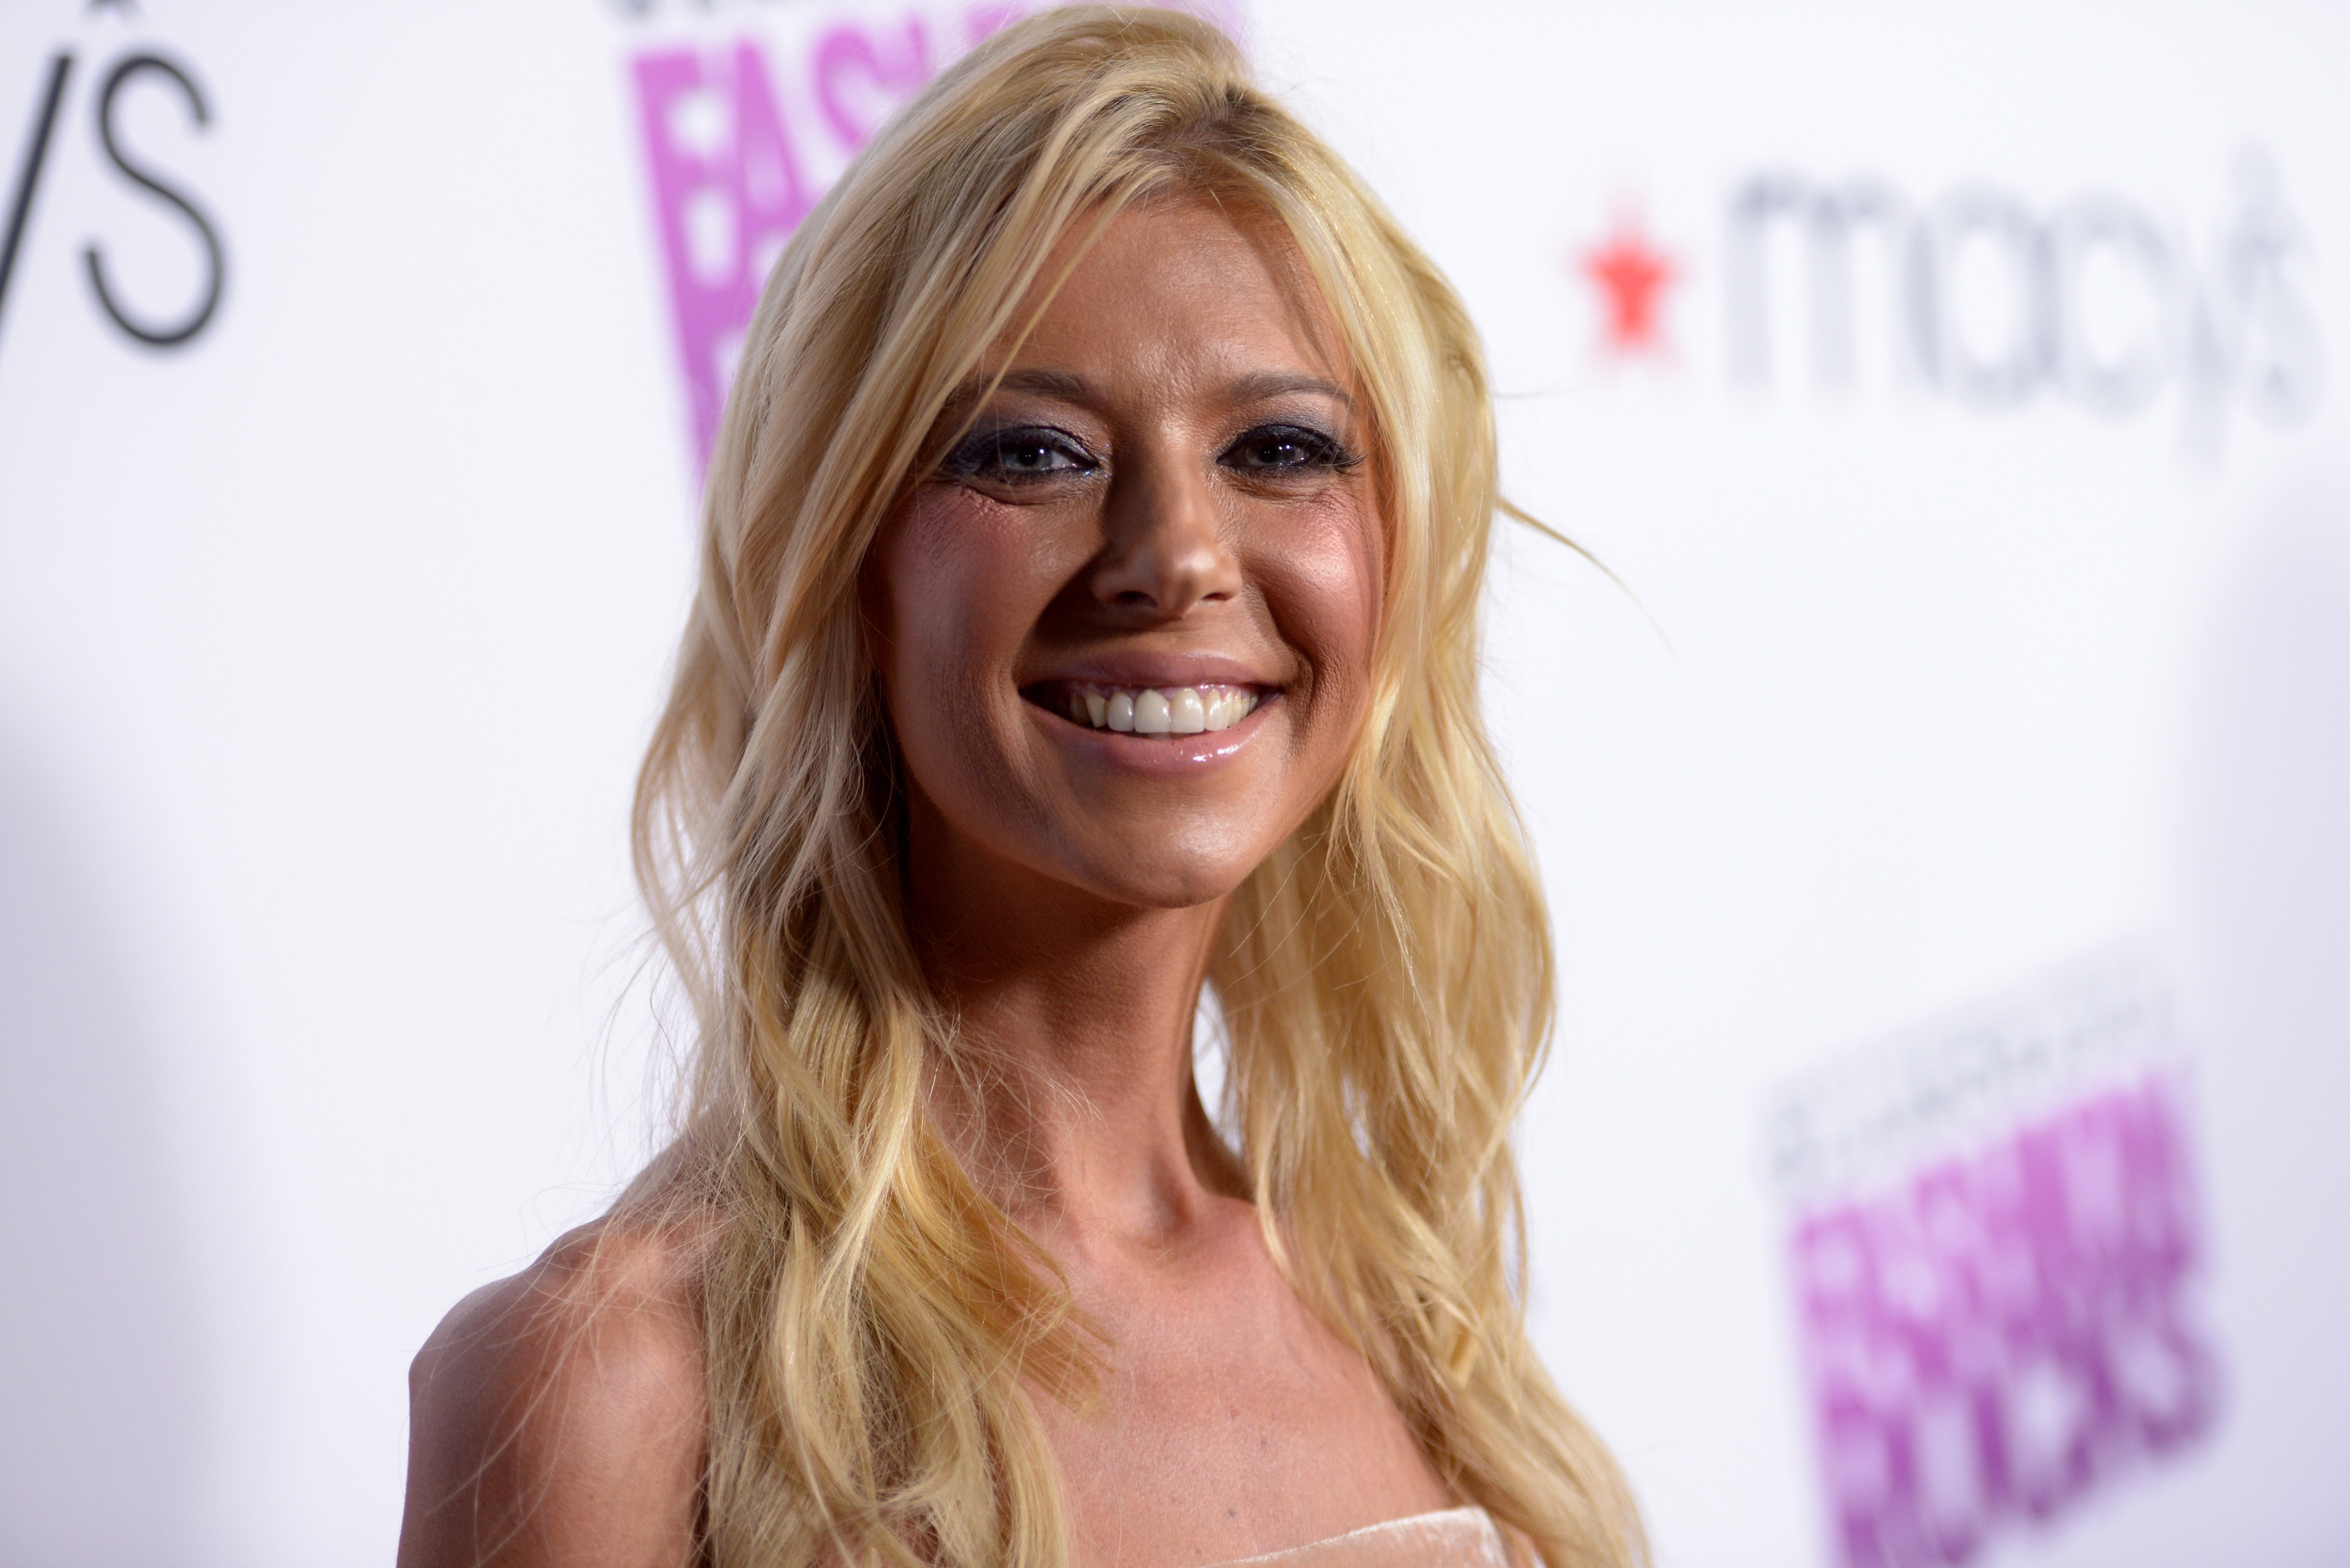 Tara Reid And Jenny McCarthy Throw Shade In Painfully Awkward Radio Interview GettyImages 455095210